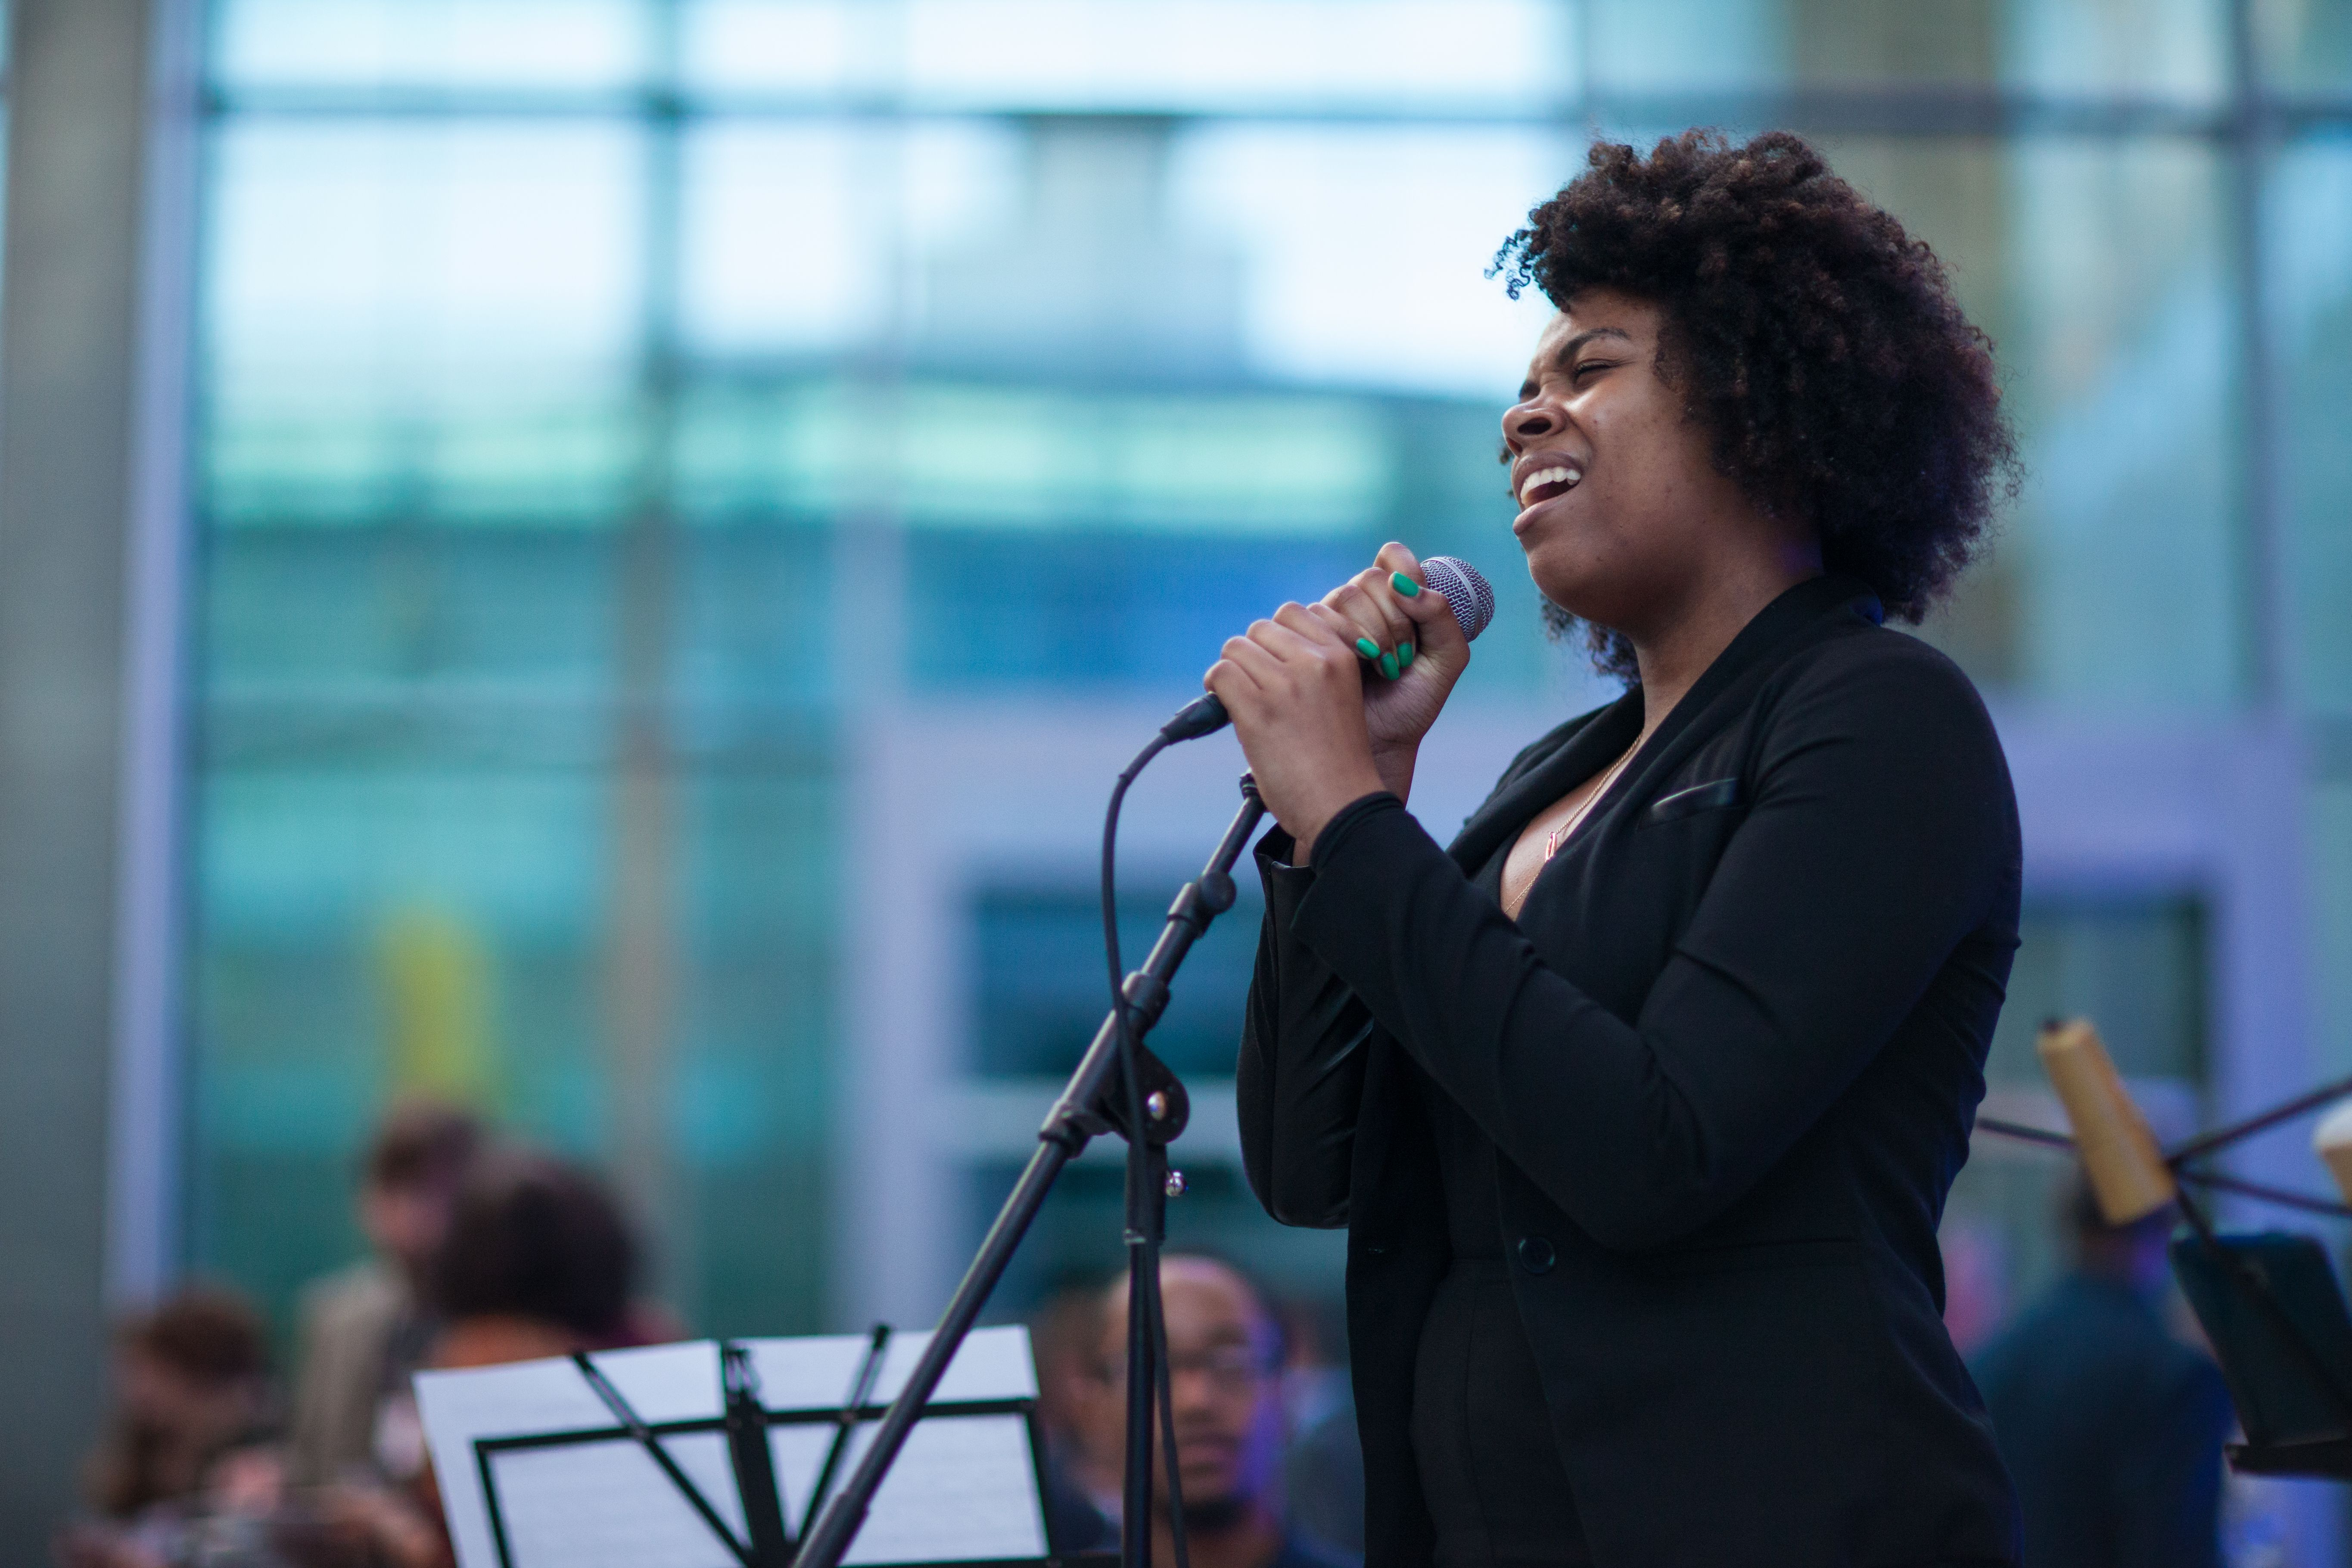 A picture of a BAA vocalist singing while gripping a microphone with a band in the background.